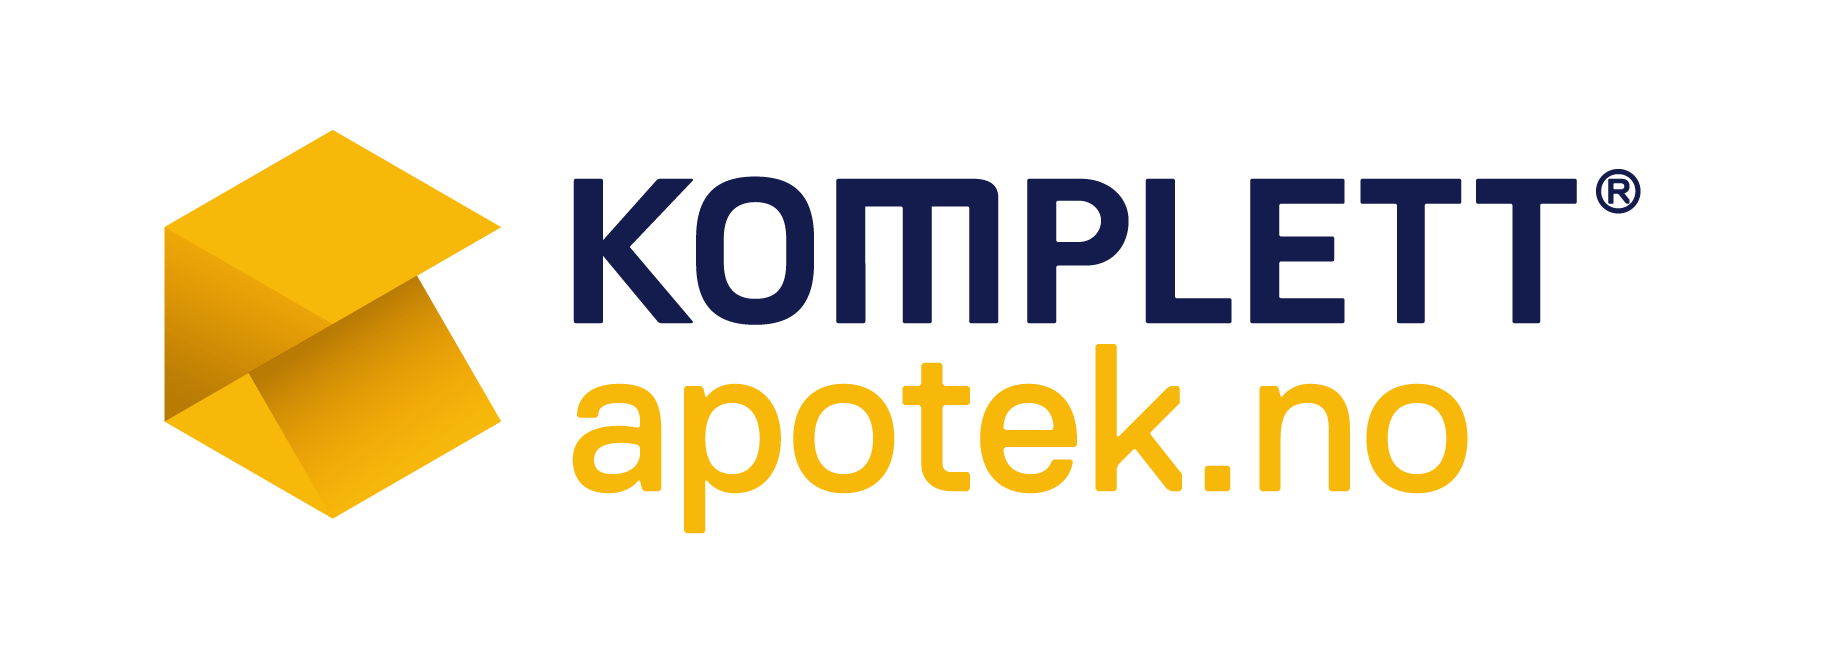 Logo for nettapoteket Komplett Apotek.no .